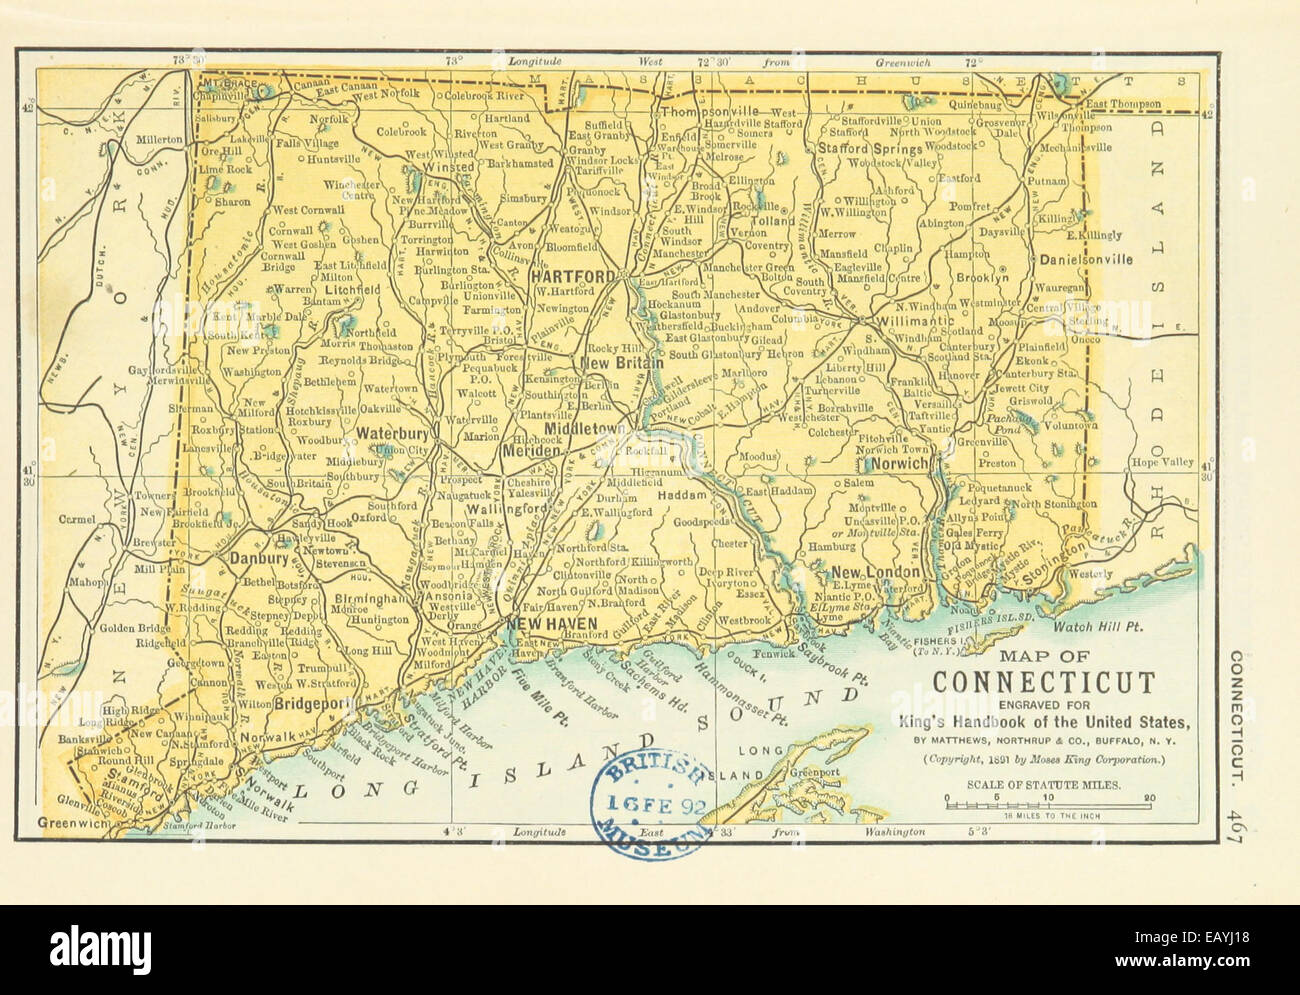 Connecticut In Us Map.Us Maps 1891 P469 Map Of Connecticut Stock Photo 75594884 Alamy